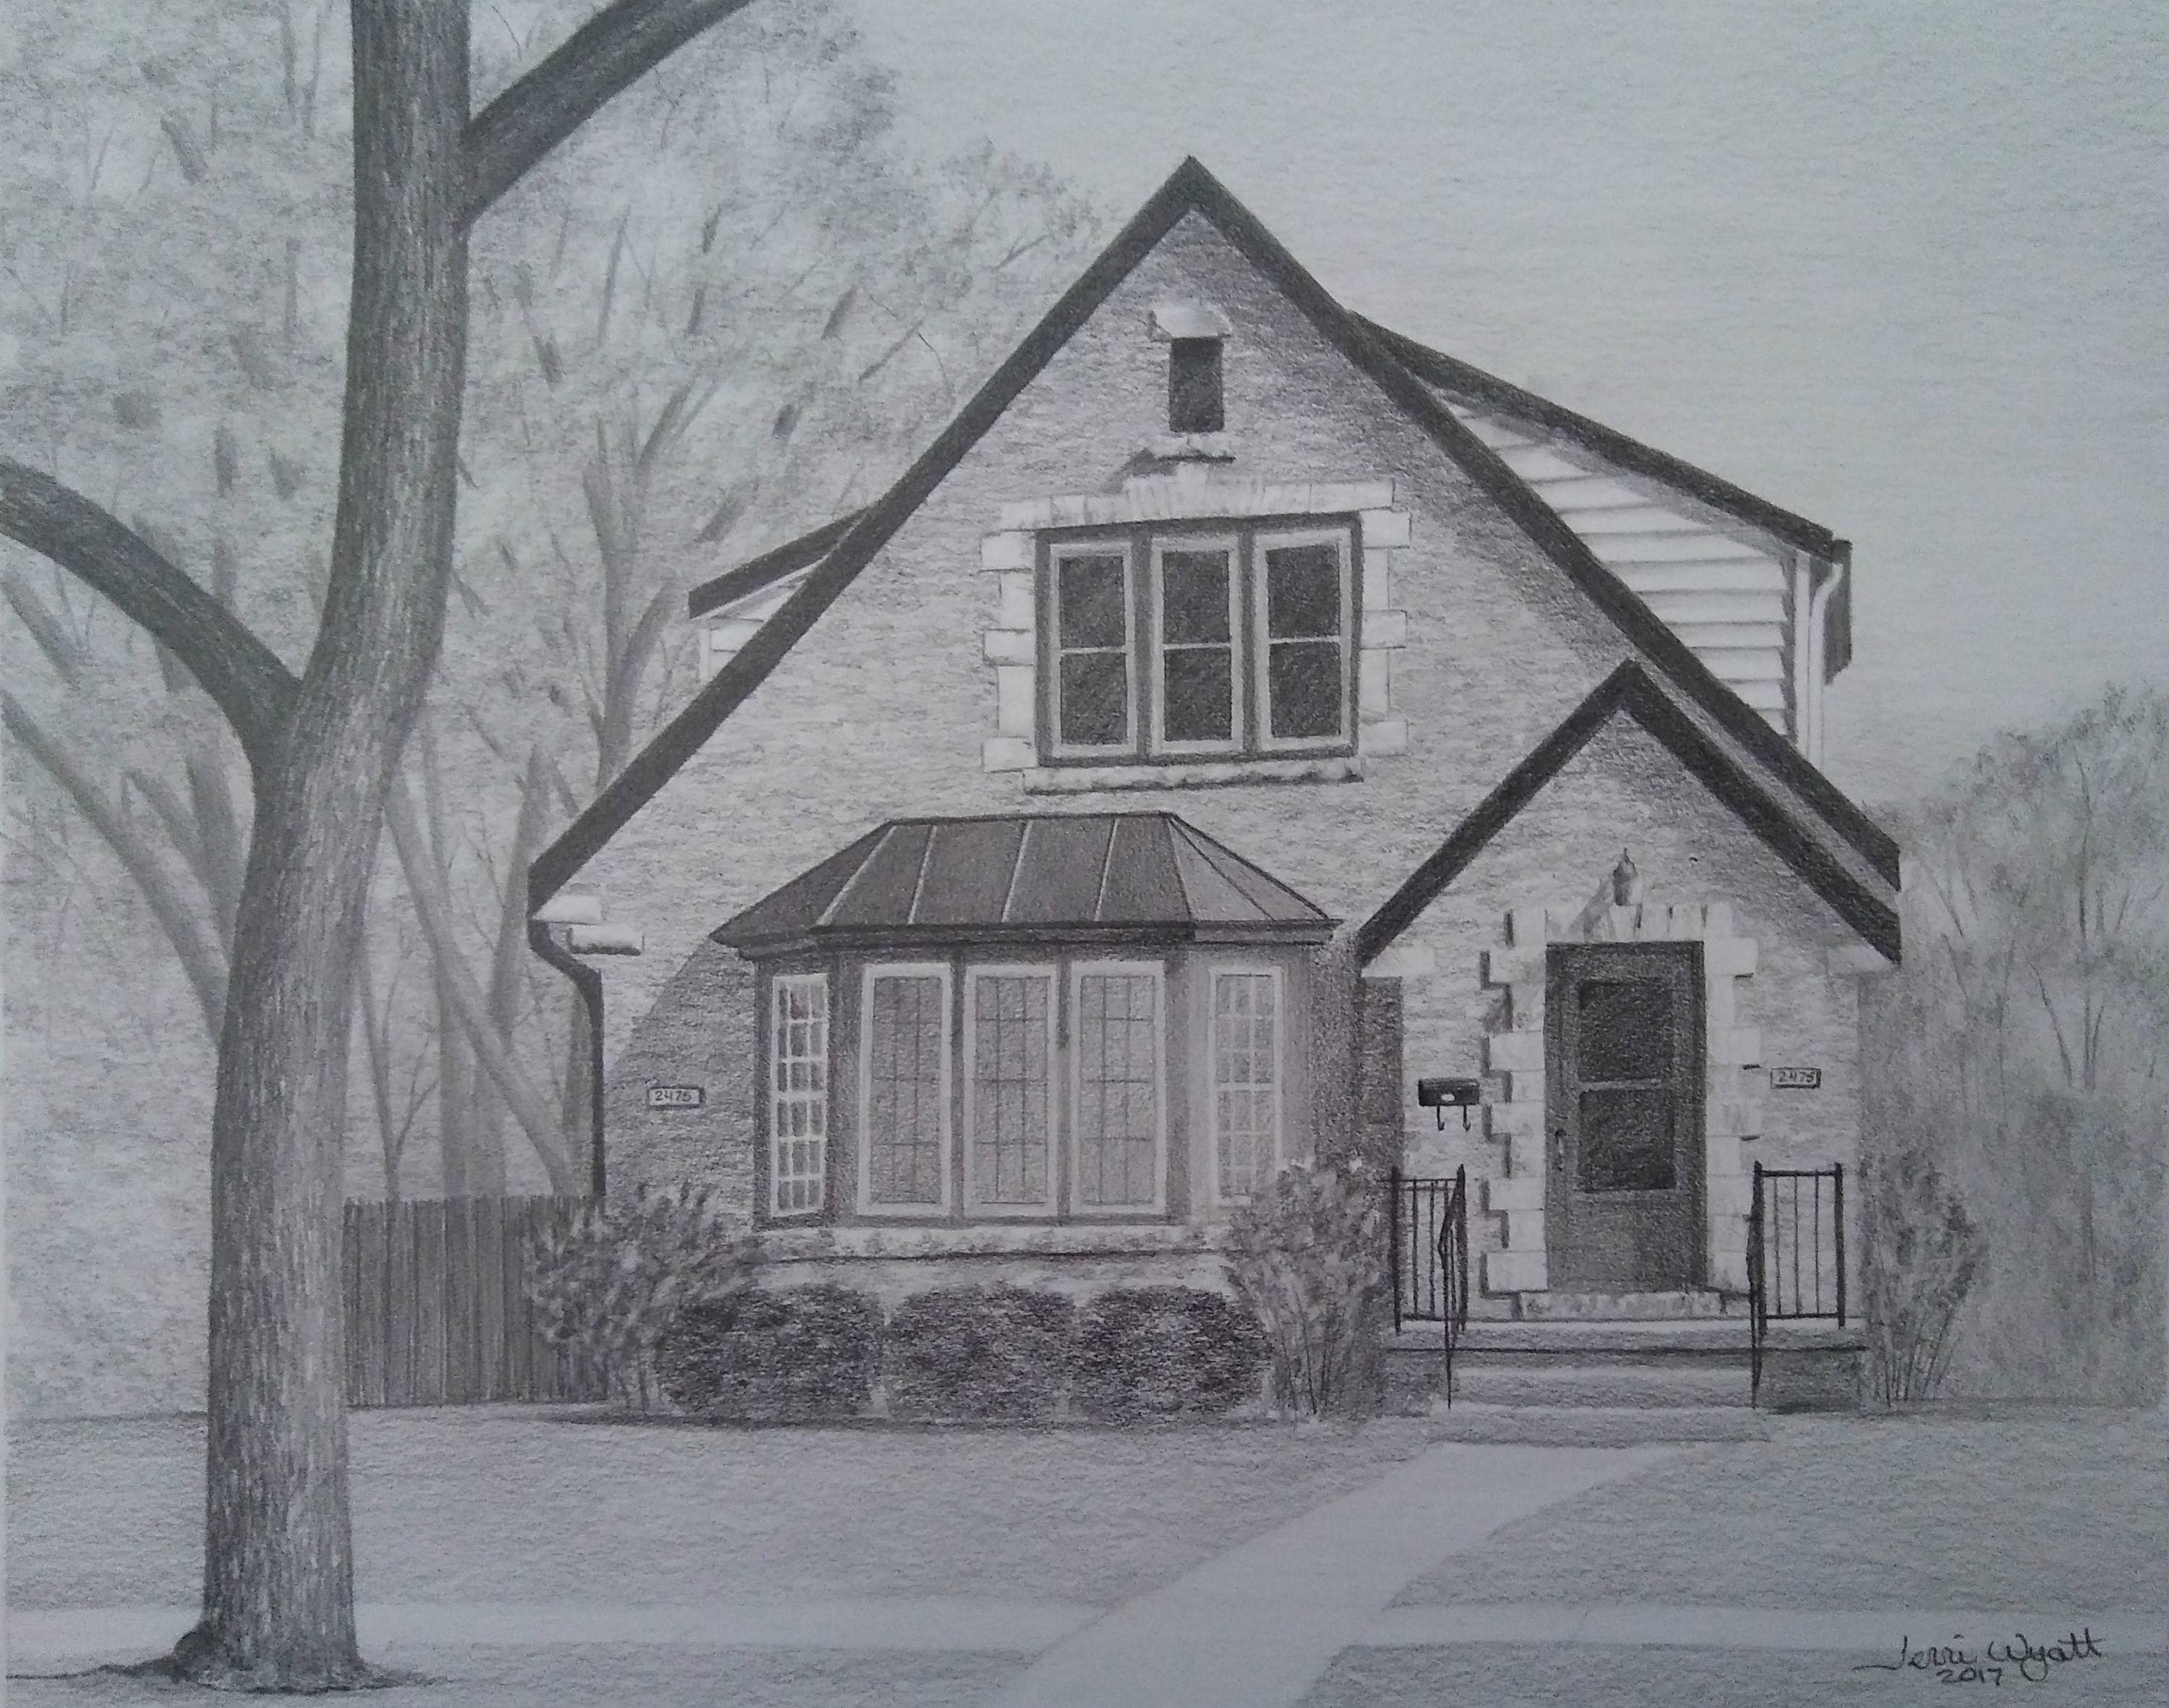 Custom home drawing from photo house pencil sketch art landscape drawing from picture